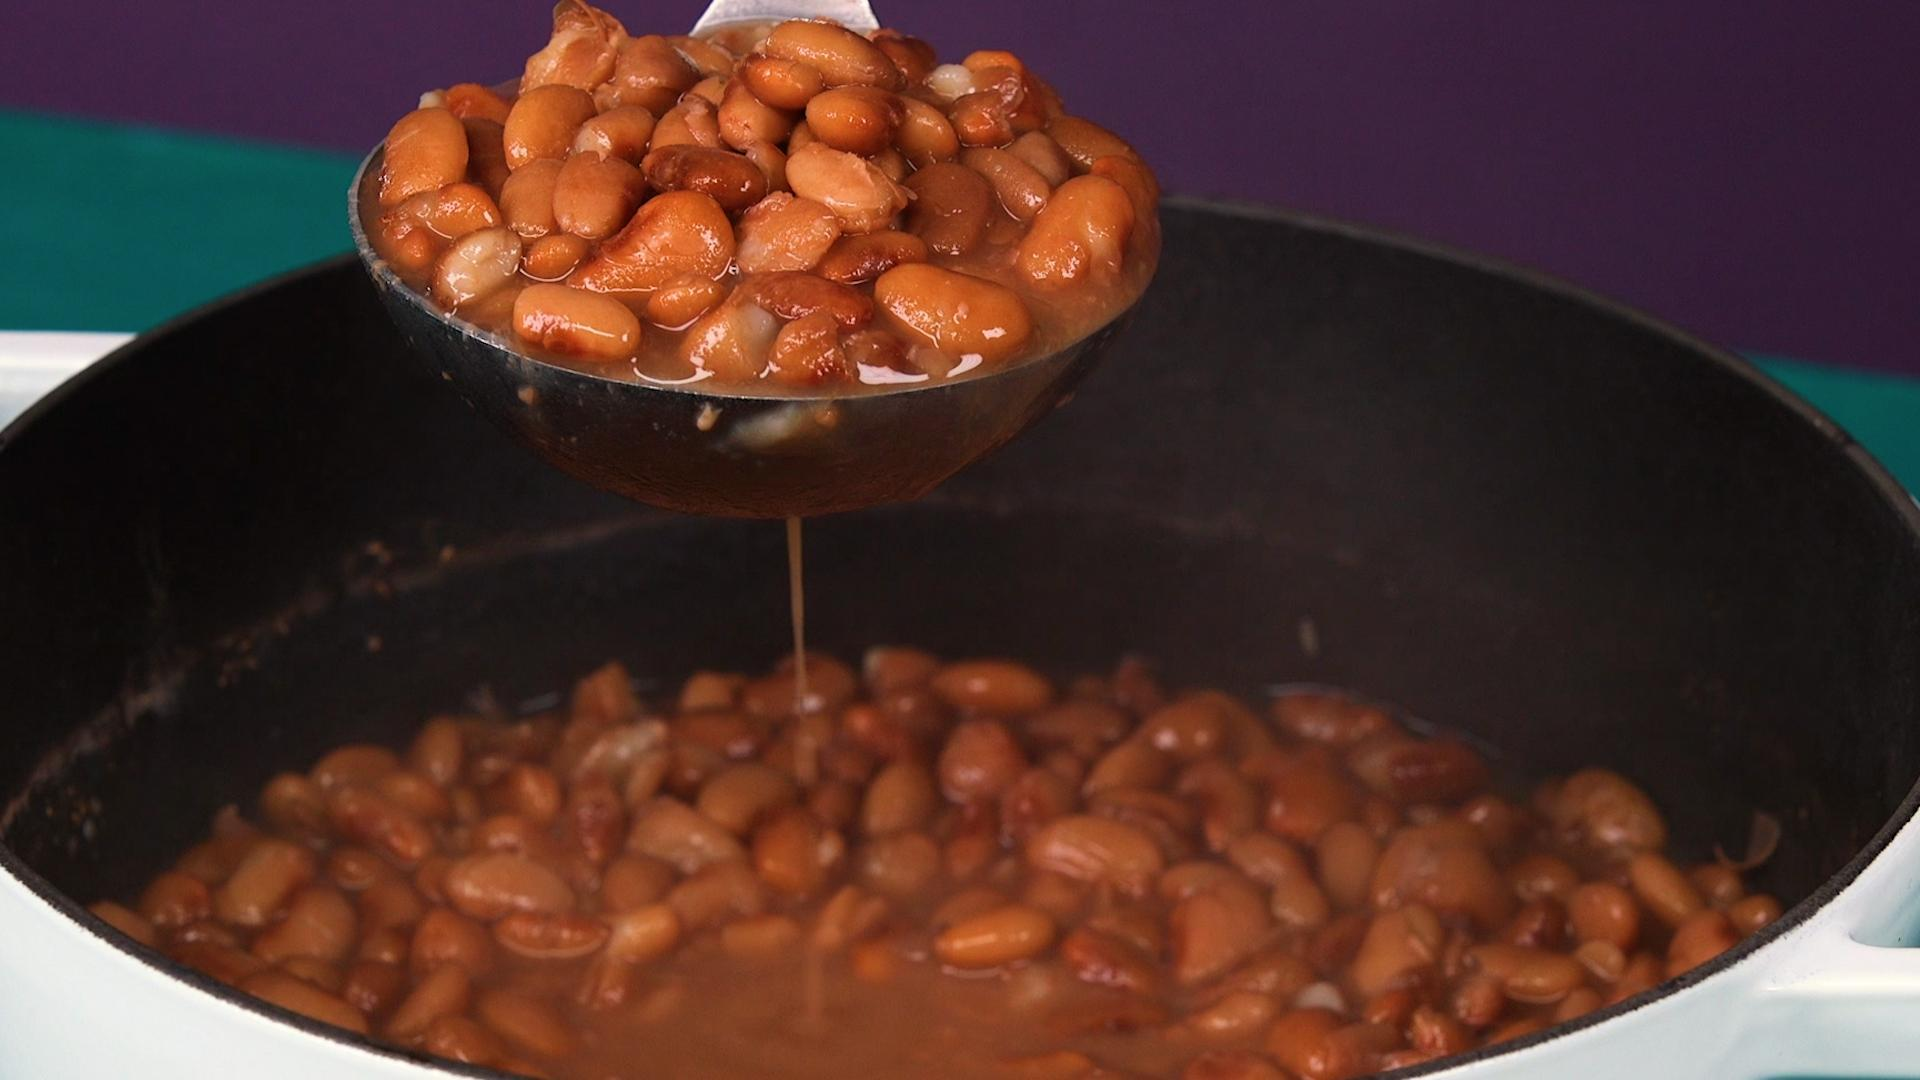 So THAT'S Why Beans Make You Gassy | HuffPost Life